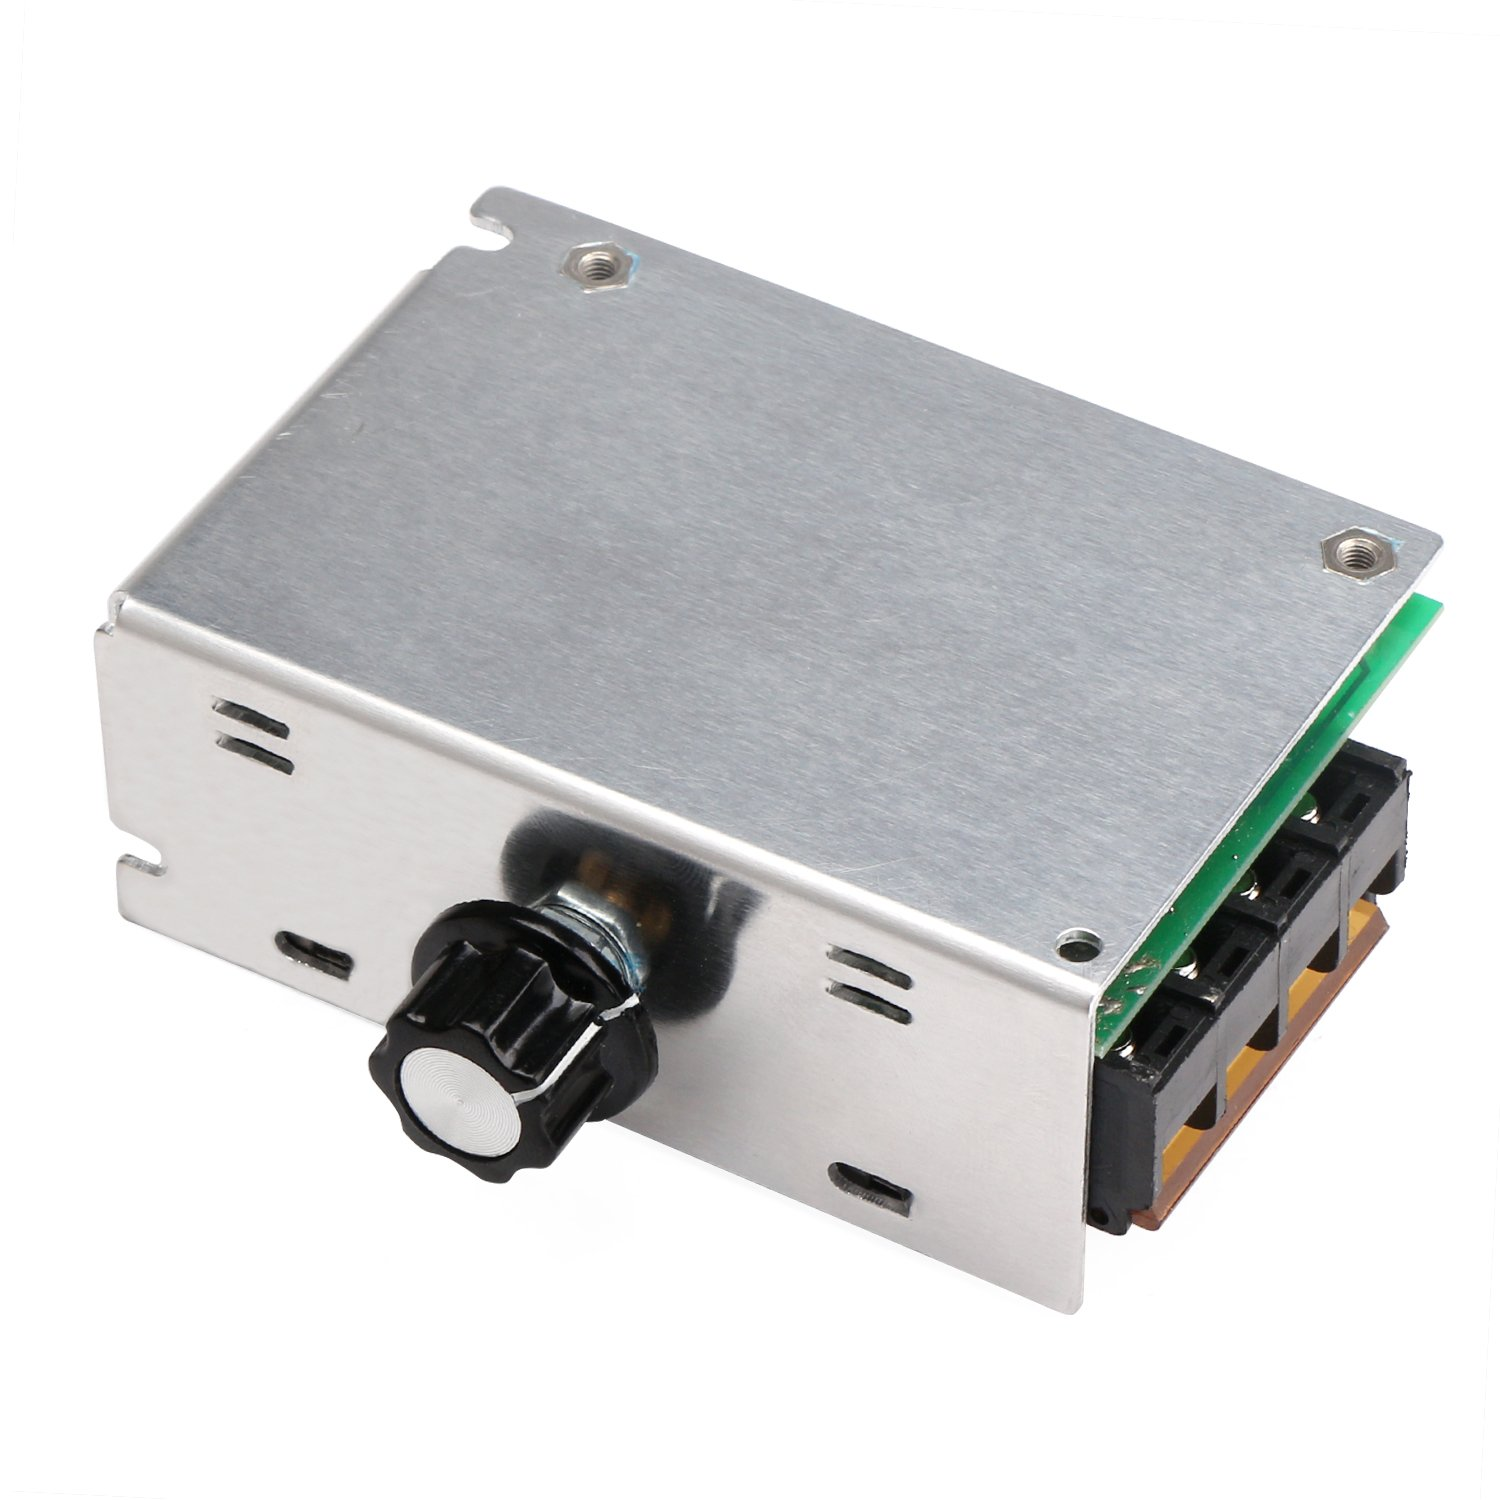 Motor Speed Controller Drok Control Board Ac 110v 4000w Simple Two Different Voltages Electronics Adjustable Voltage Regulator Scr High Power Dimmer Temperature Governor Dimming